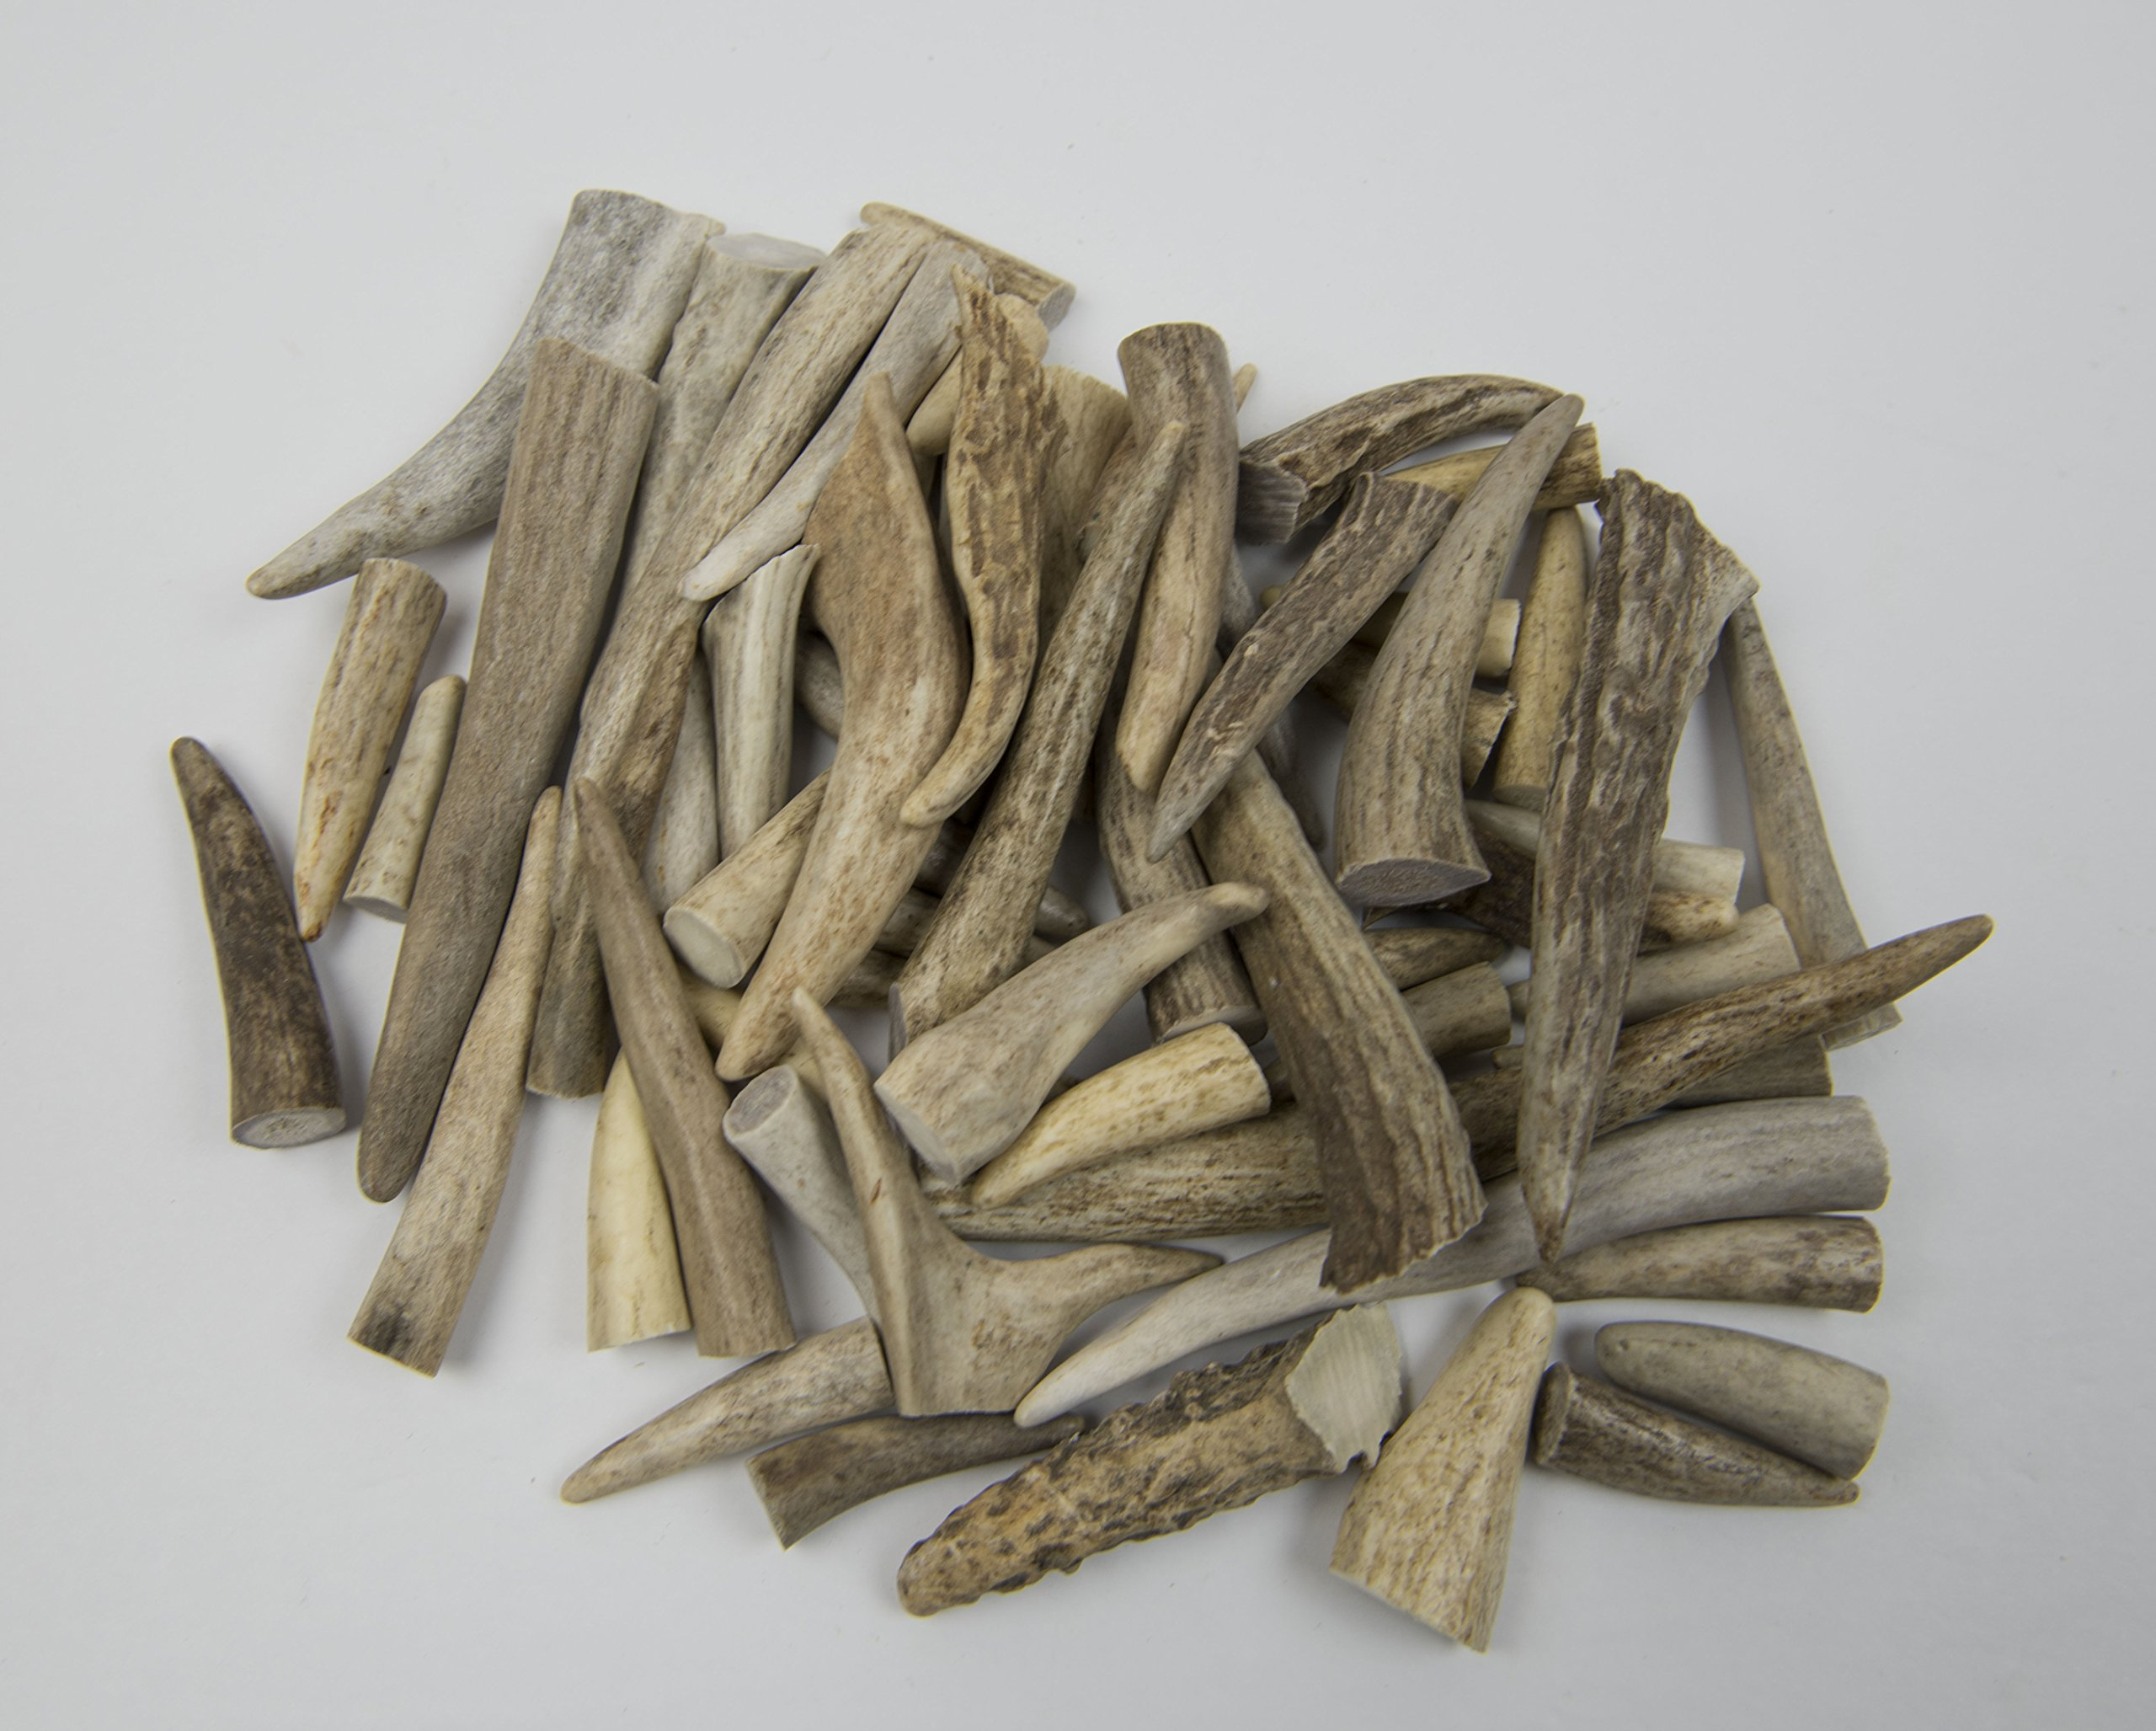 Premium ANTLER MAN Whitetail Deer Antler TIPS/POINTS/TINES - Sold by the pound